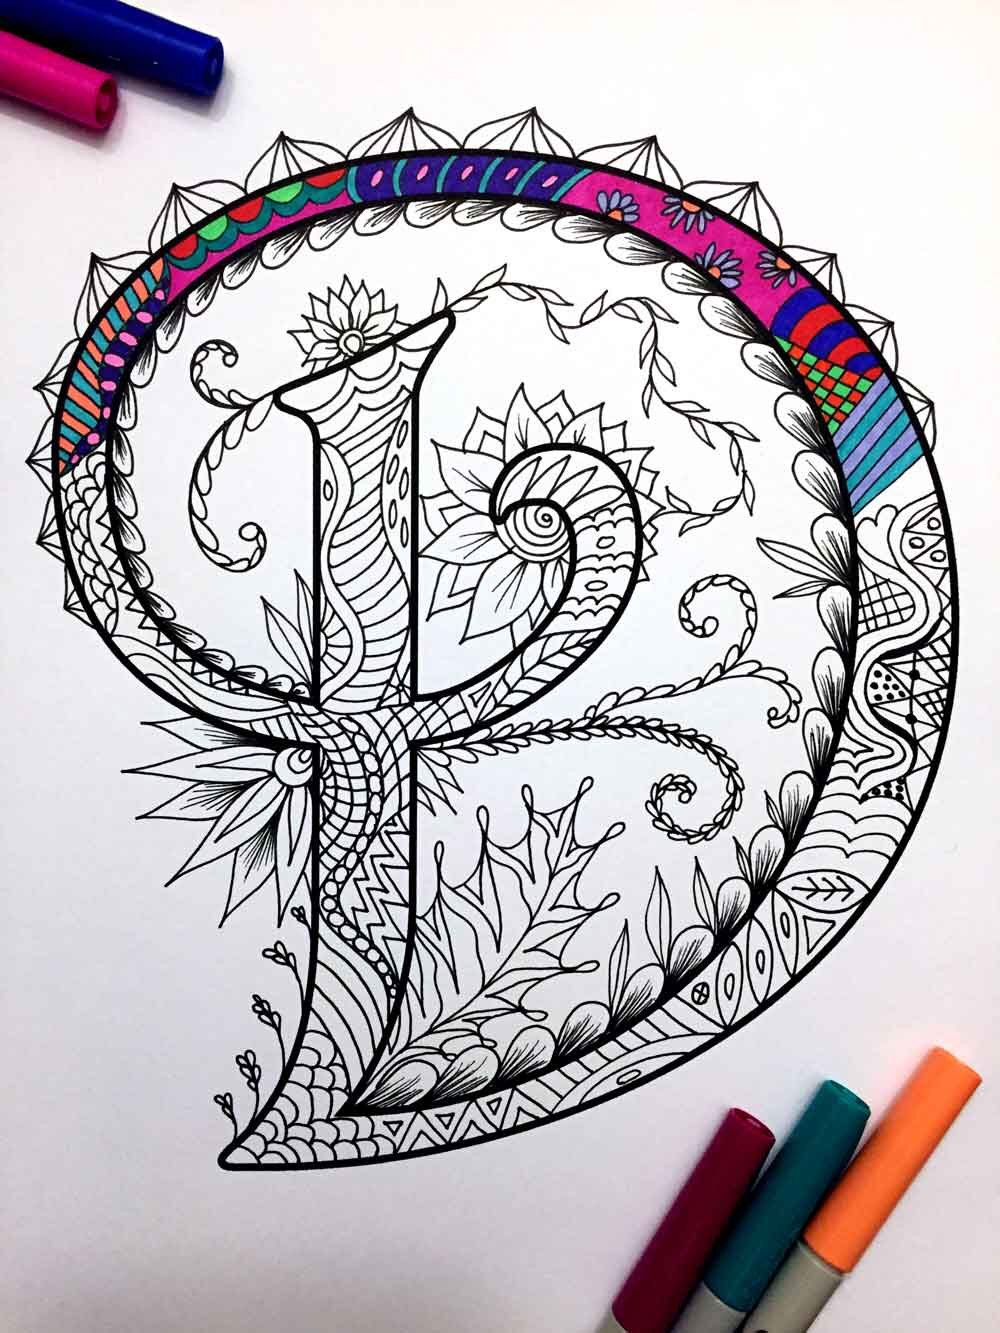 Letter D Zentangle Inspired By The Font Etsy Coloring Pages Zentangle Zentangle Patterns